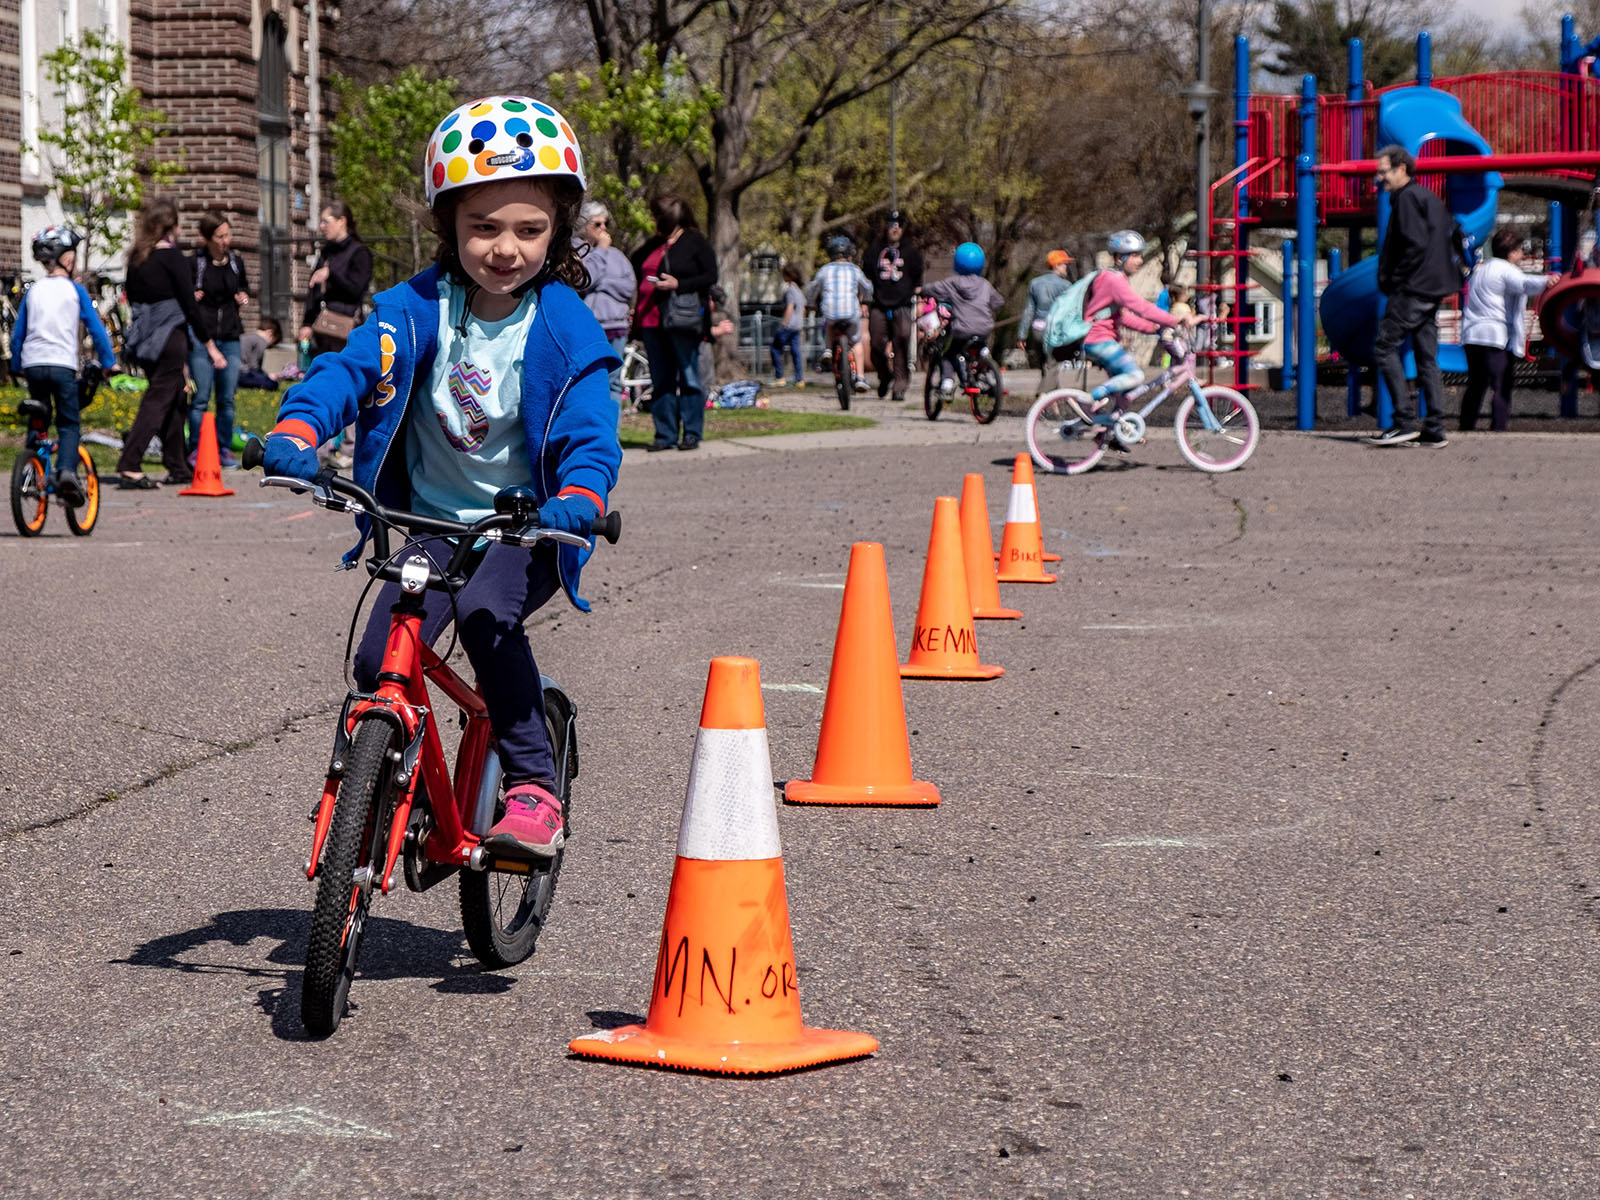 A child riding a bike around orange traffic cones